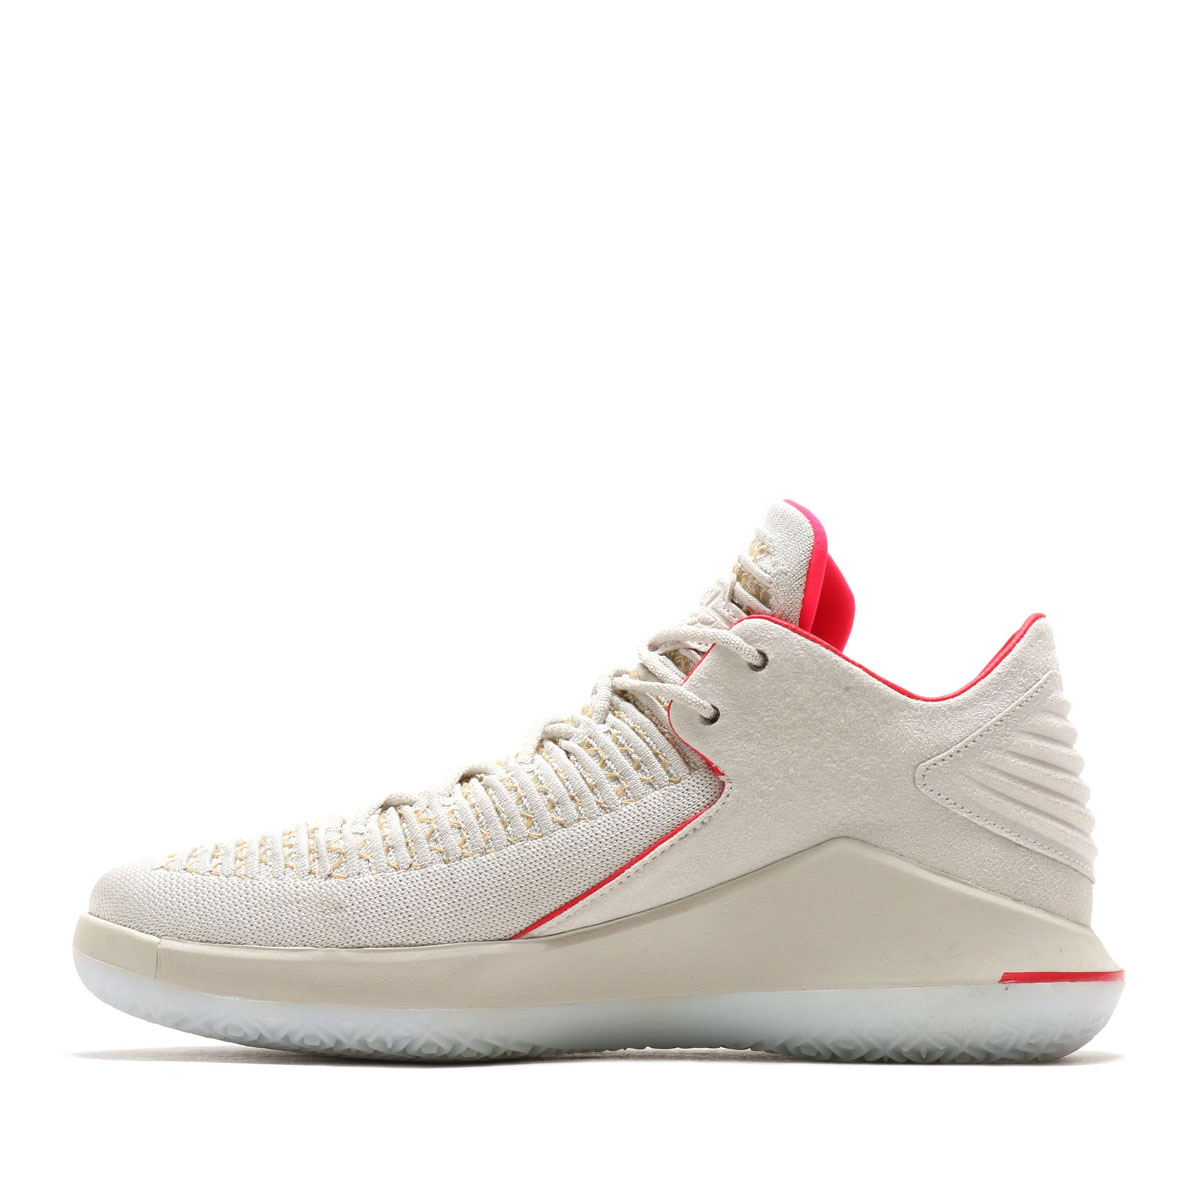 24bd727cfc6 ... where can i buy nike air jordan xxxii low pf nike air jordan xxxii low  pf